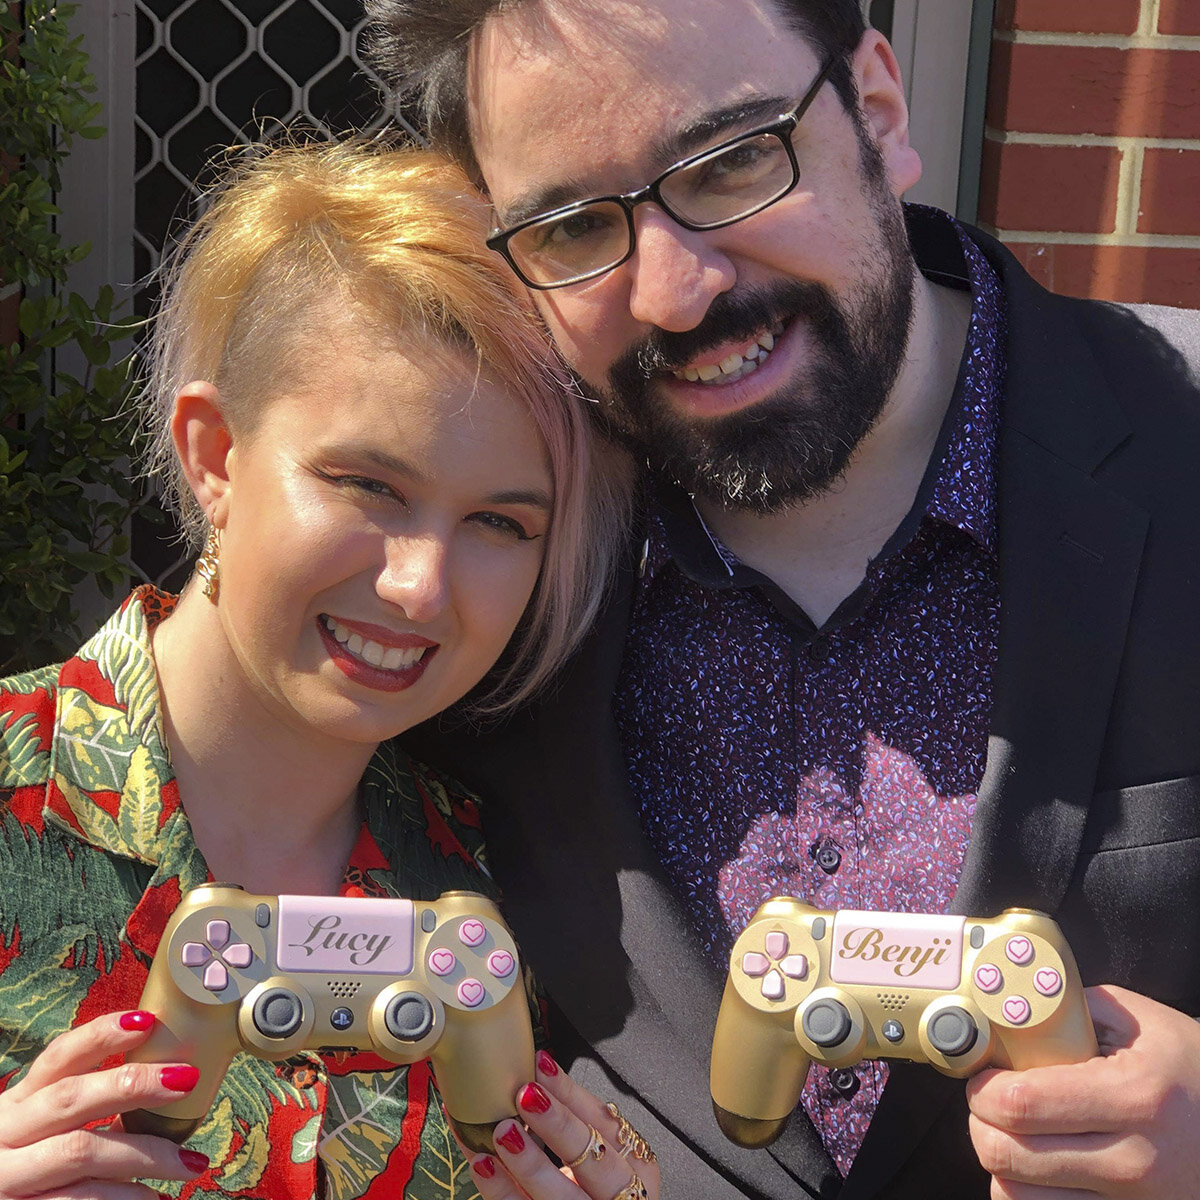 Custm wedding gift controllers - PS$ - We Are Robots